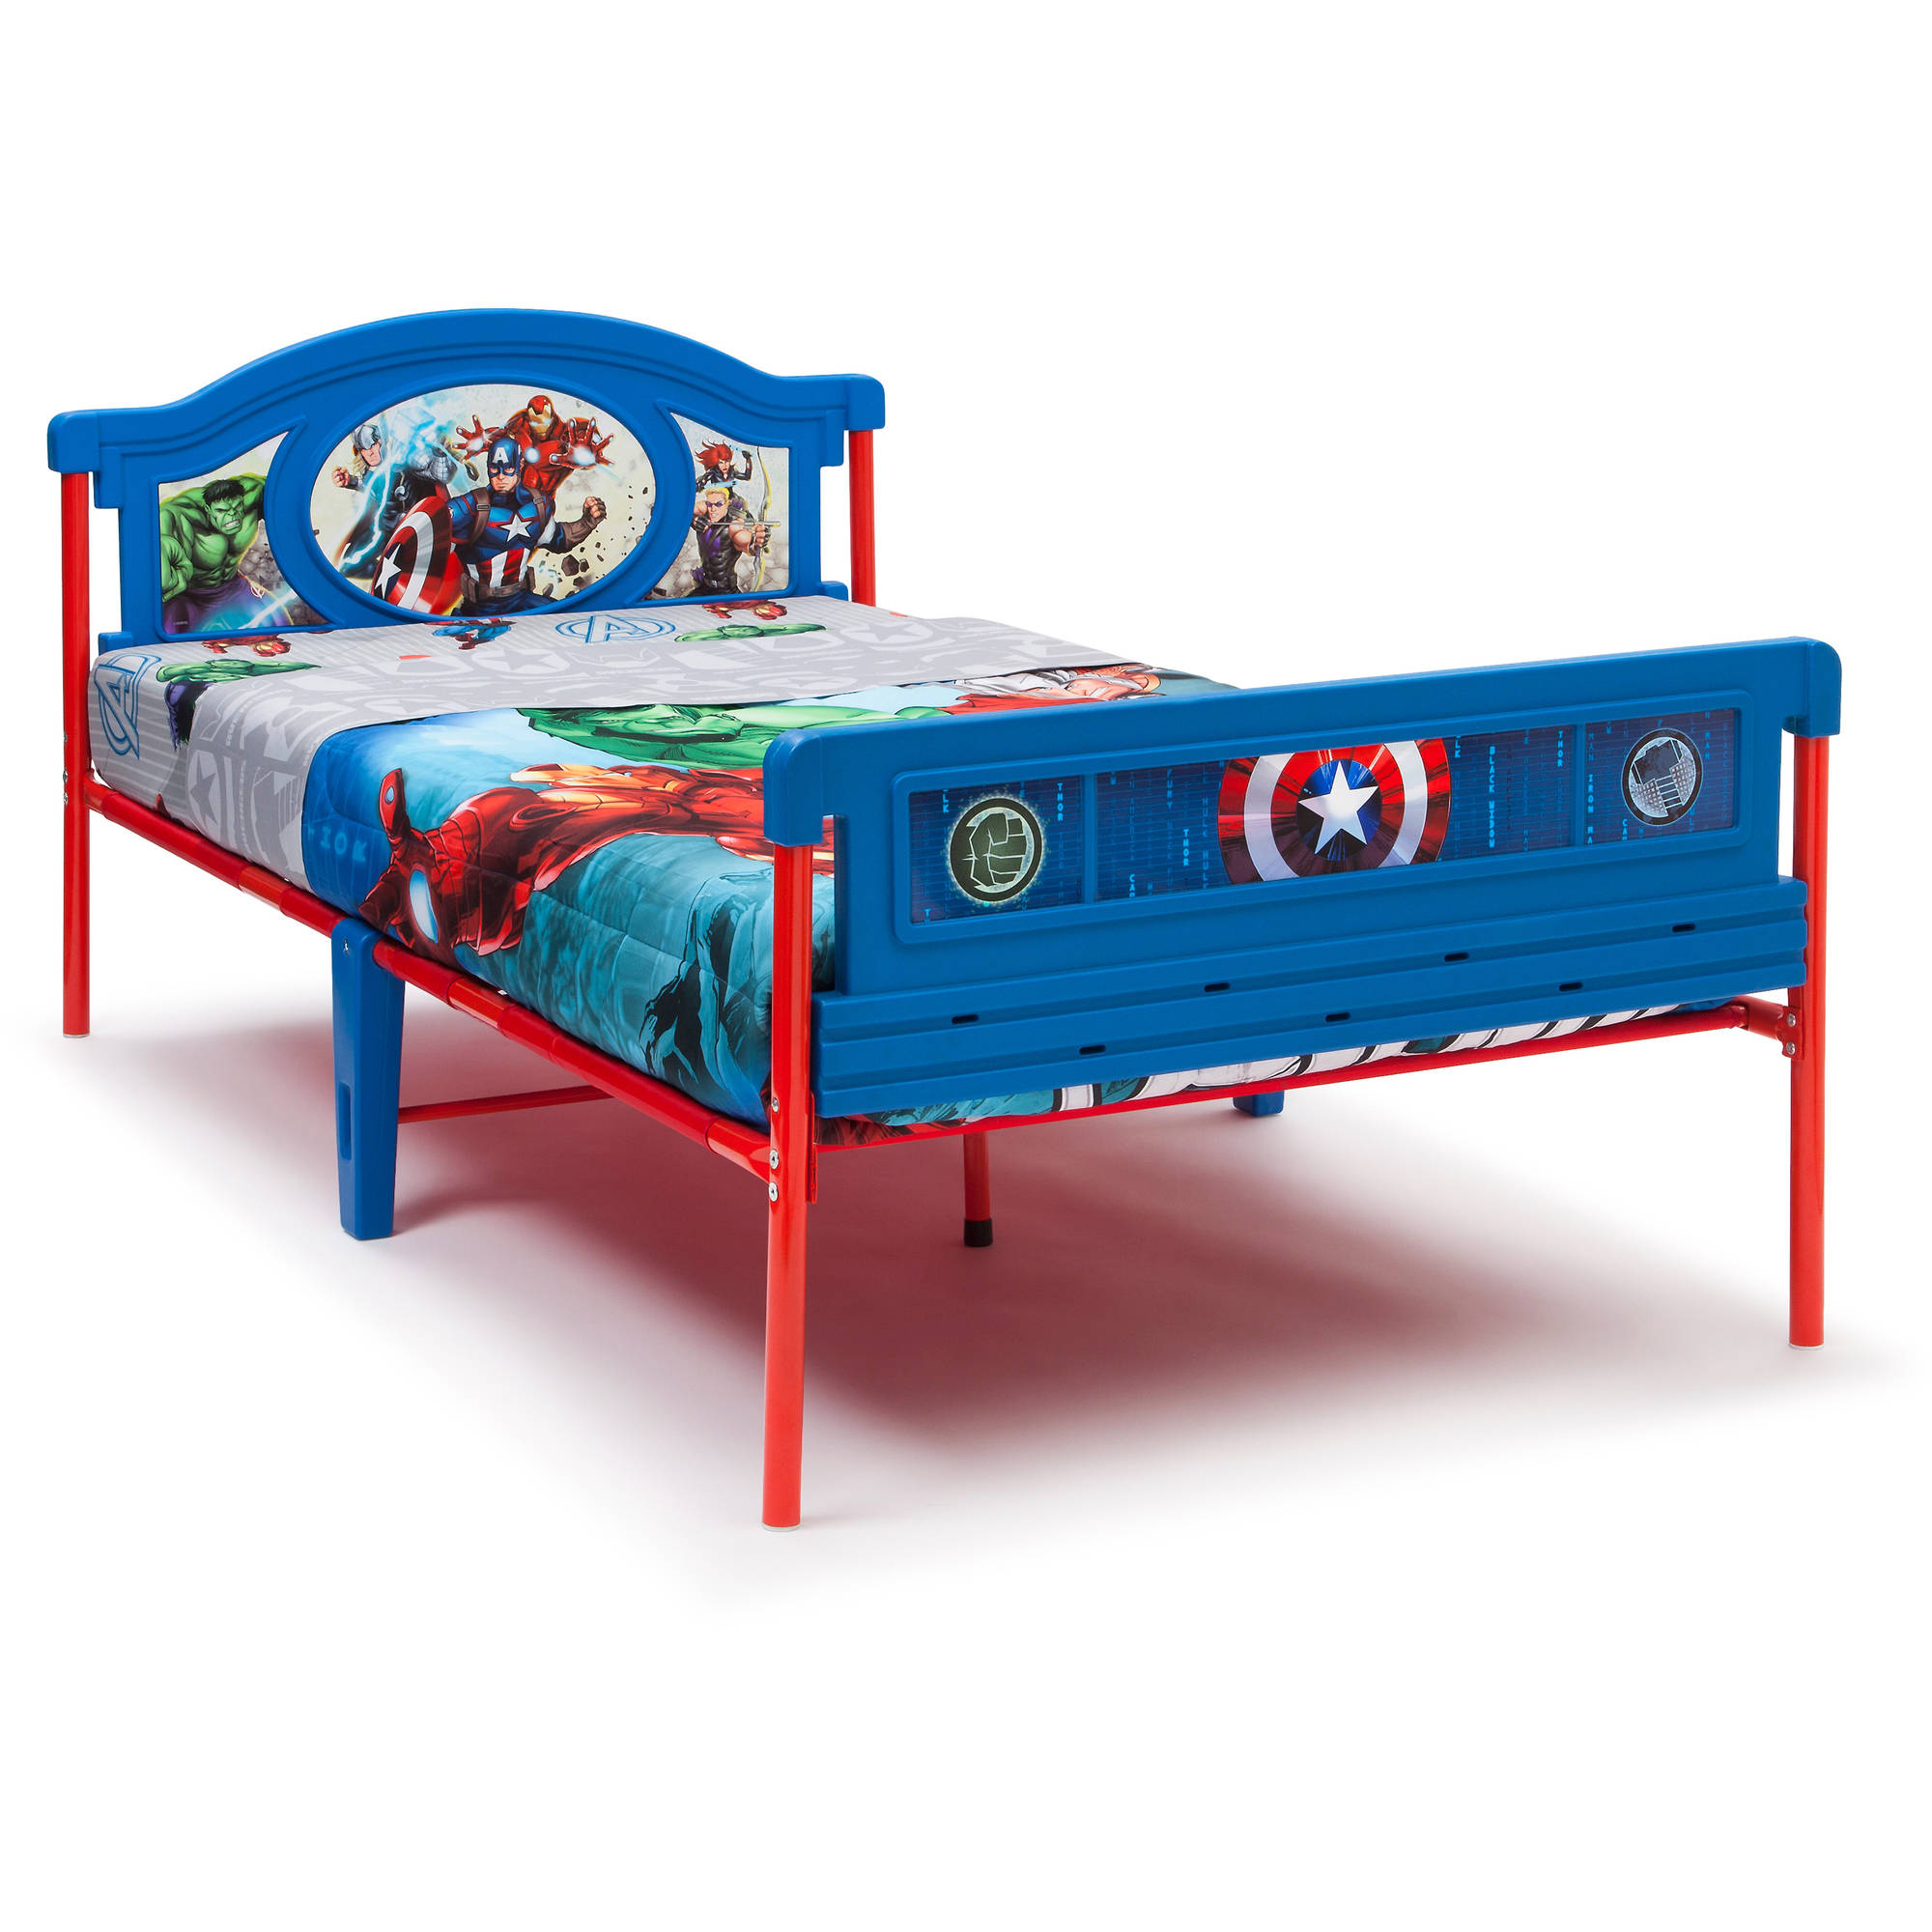 Twin Bed Size Toddler Marvel Super Heroes Colorful Decals Headboard